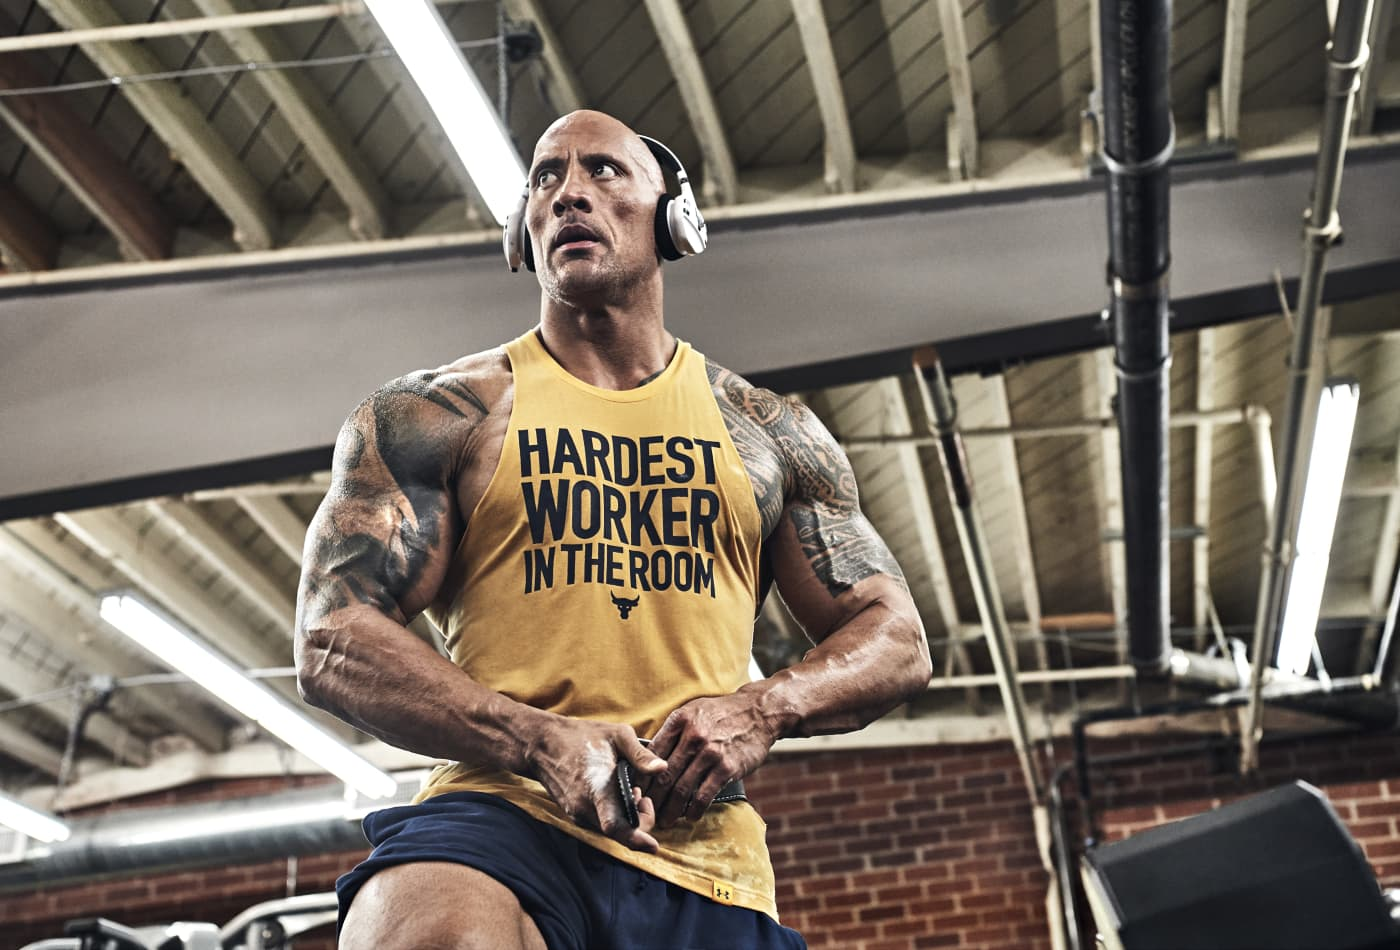 c25c55884 Dwayne Johnson just dropped his latest Under Armour ad campaign for Project  Rock